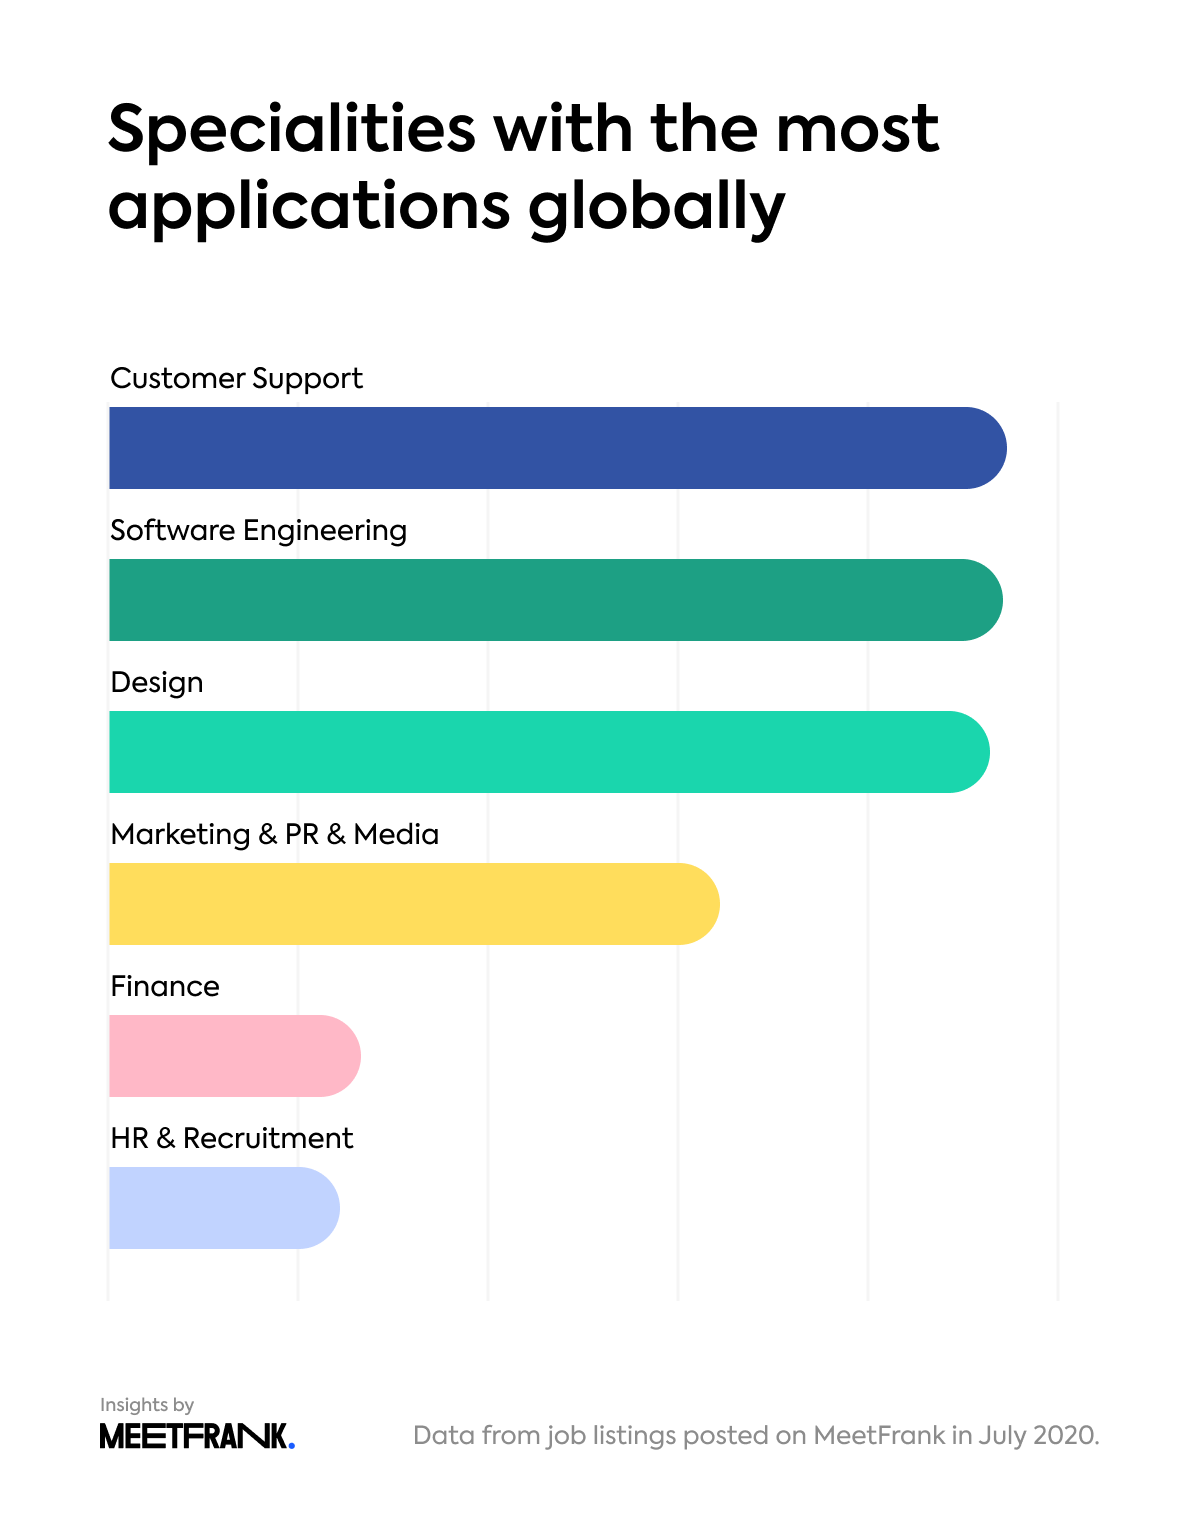 top specialties with most applications globally